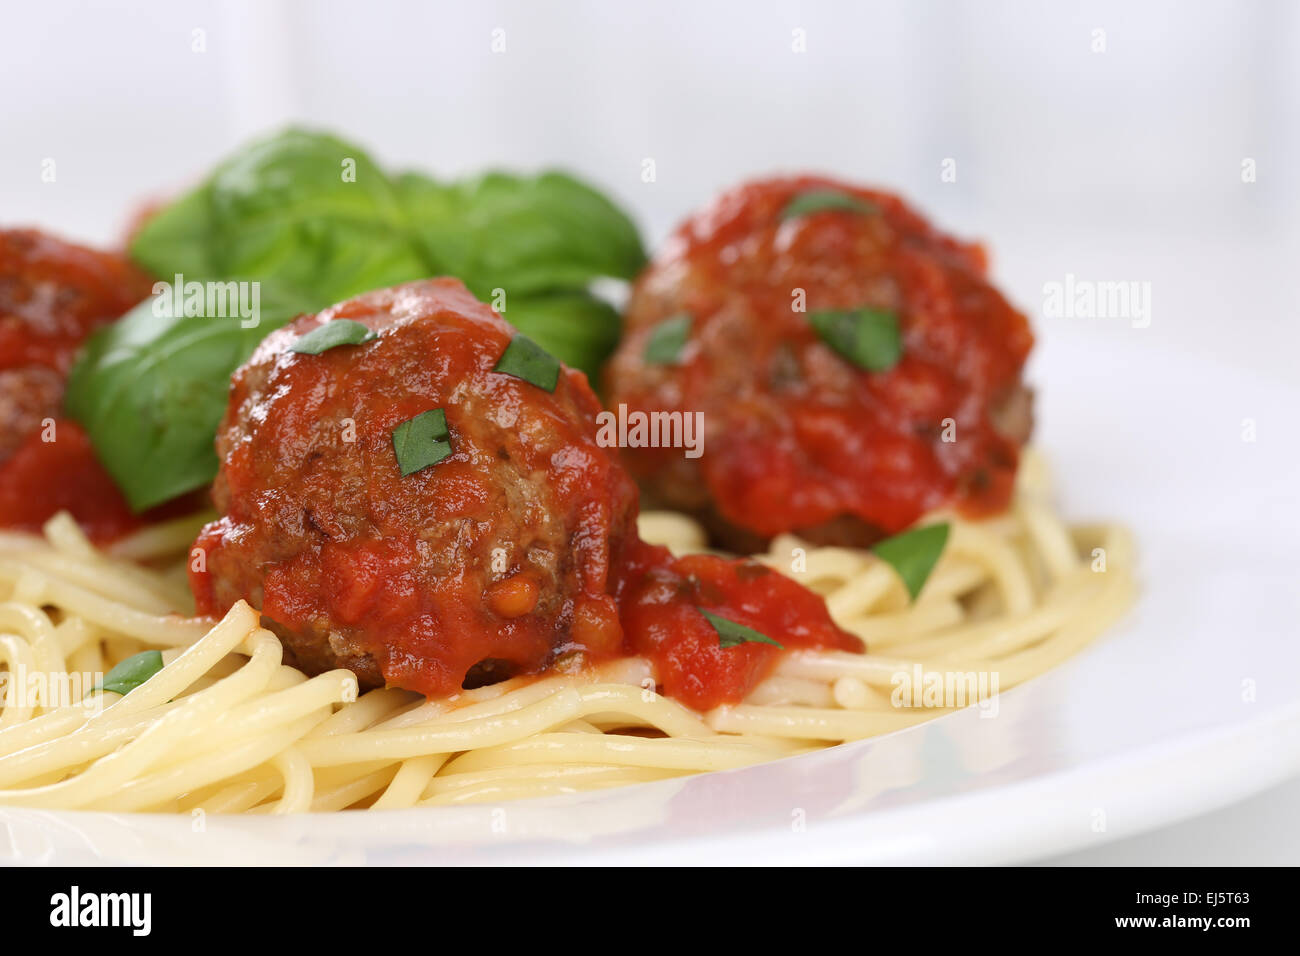 how to cook meatballs for spaghetti